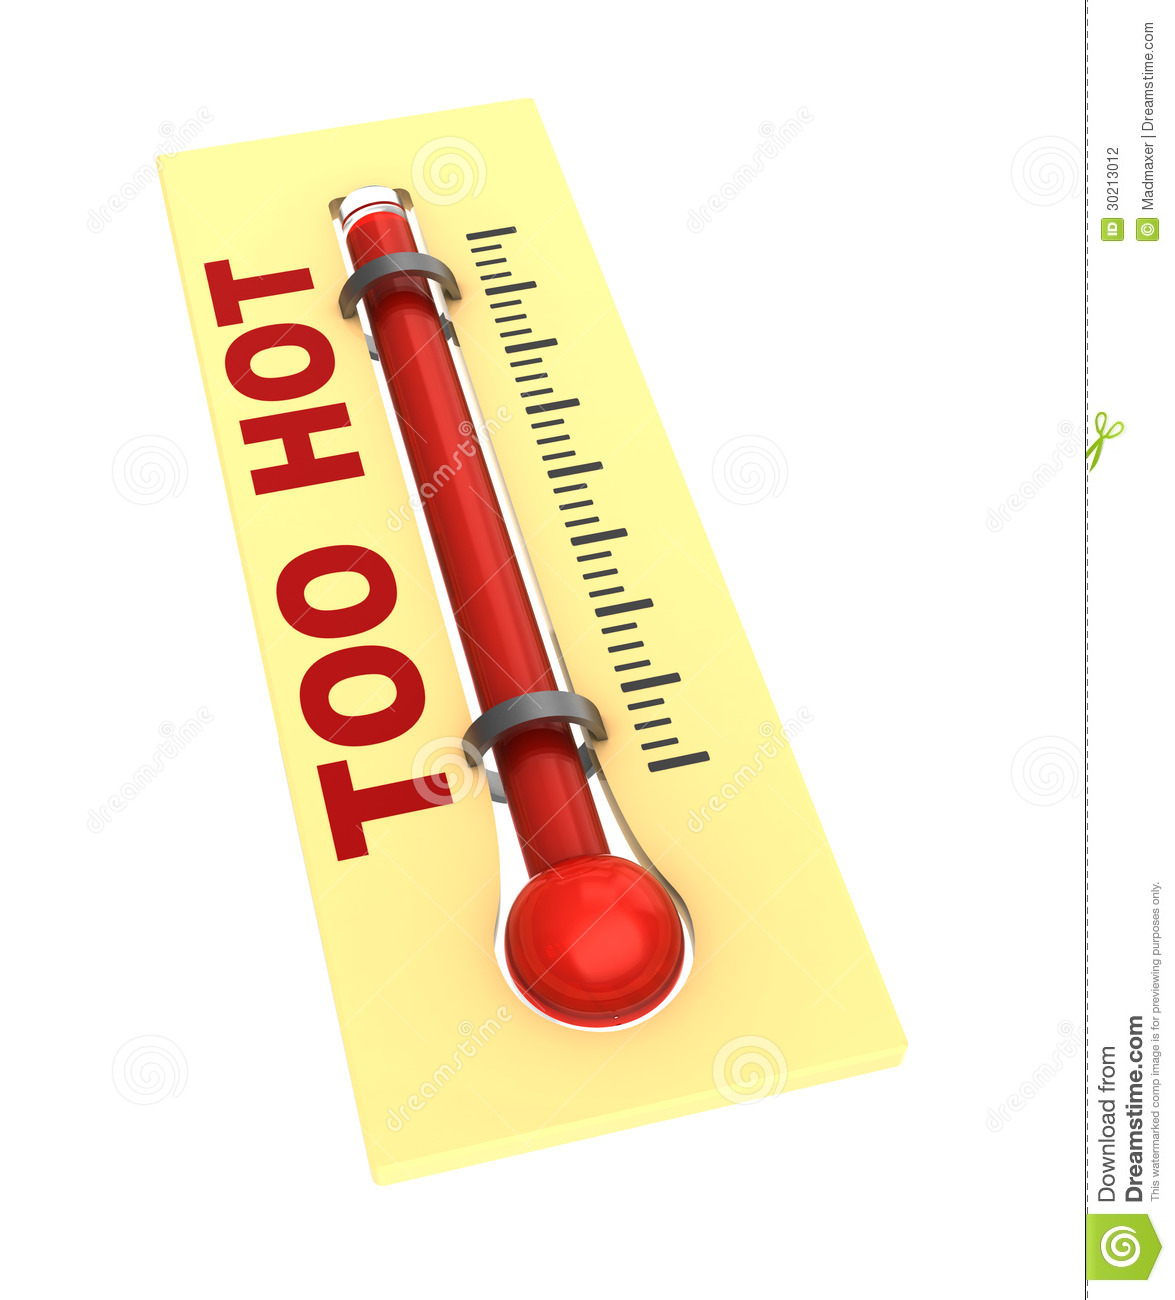 Thermometer With Hot Temperature Stock Photography - Image: 30213012